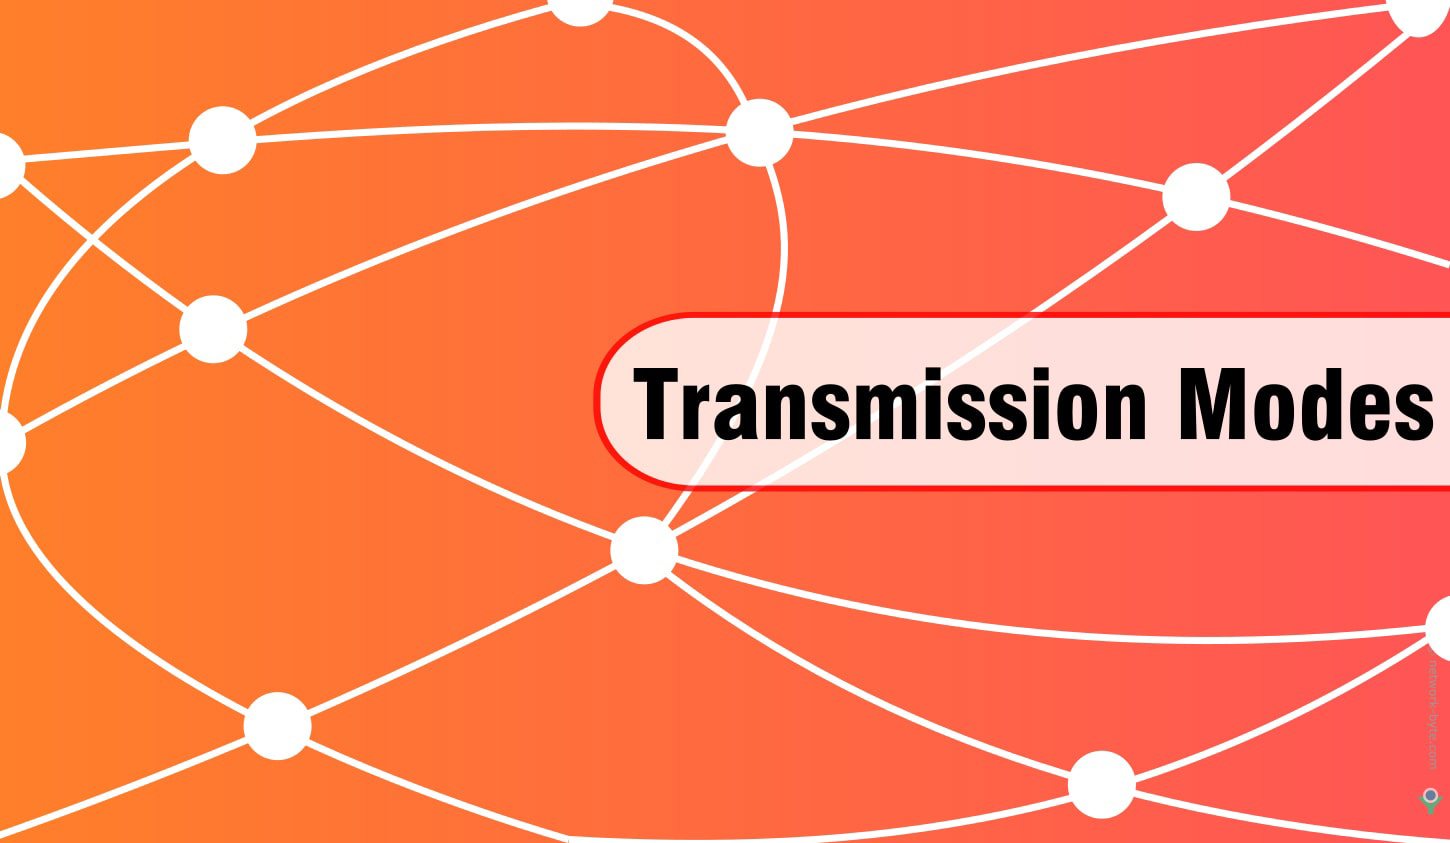 """Transmission Modes <span class=""""bsf-rt-reading-time""""><span class=""""bsf-rt-display-label"""" prefix=""""Reading Time""""></span> <span class=""""bsf-rt-display-time"""" reading_time=""""4""""></span> <span class=""""bsf-rt-display-postfix"""" postfix=""""mins""""></span></span><!-- .bsf-rt-reading-time -->"""